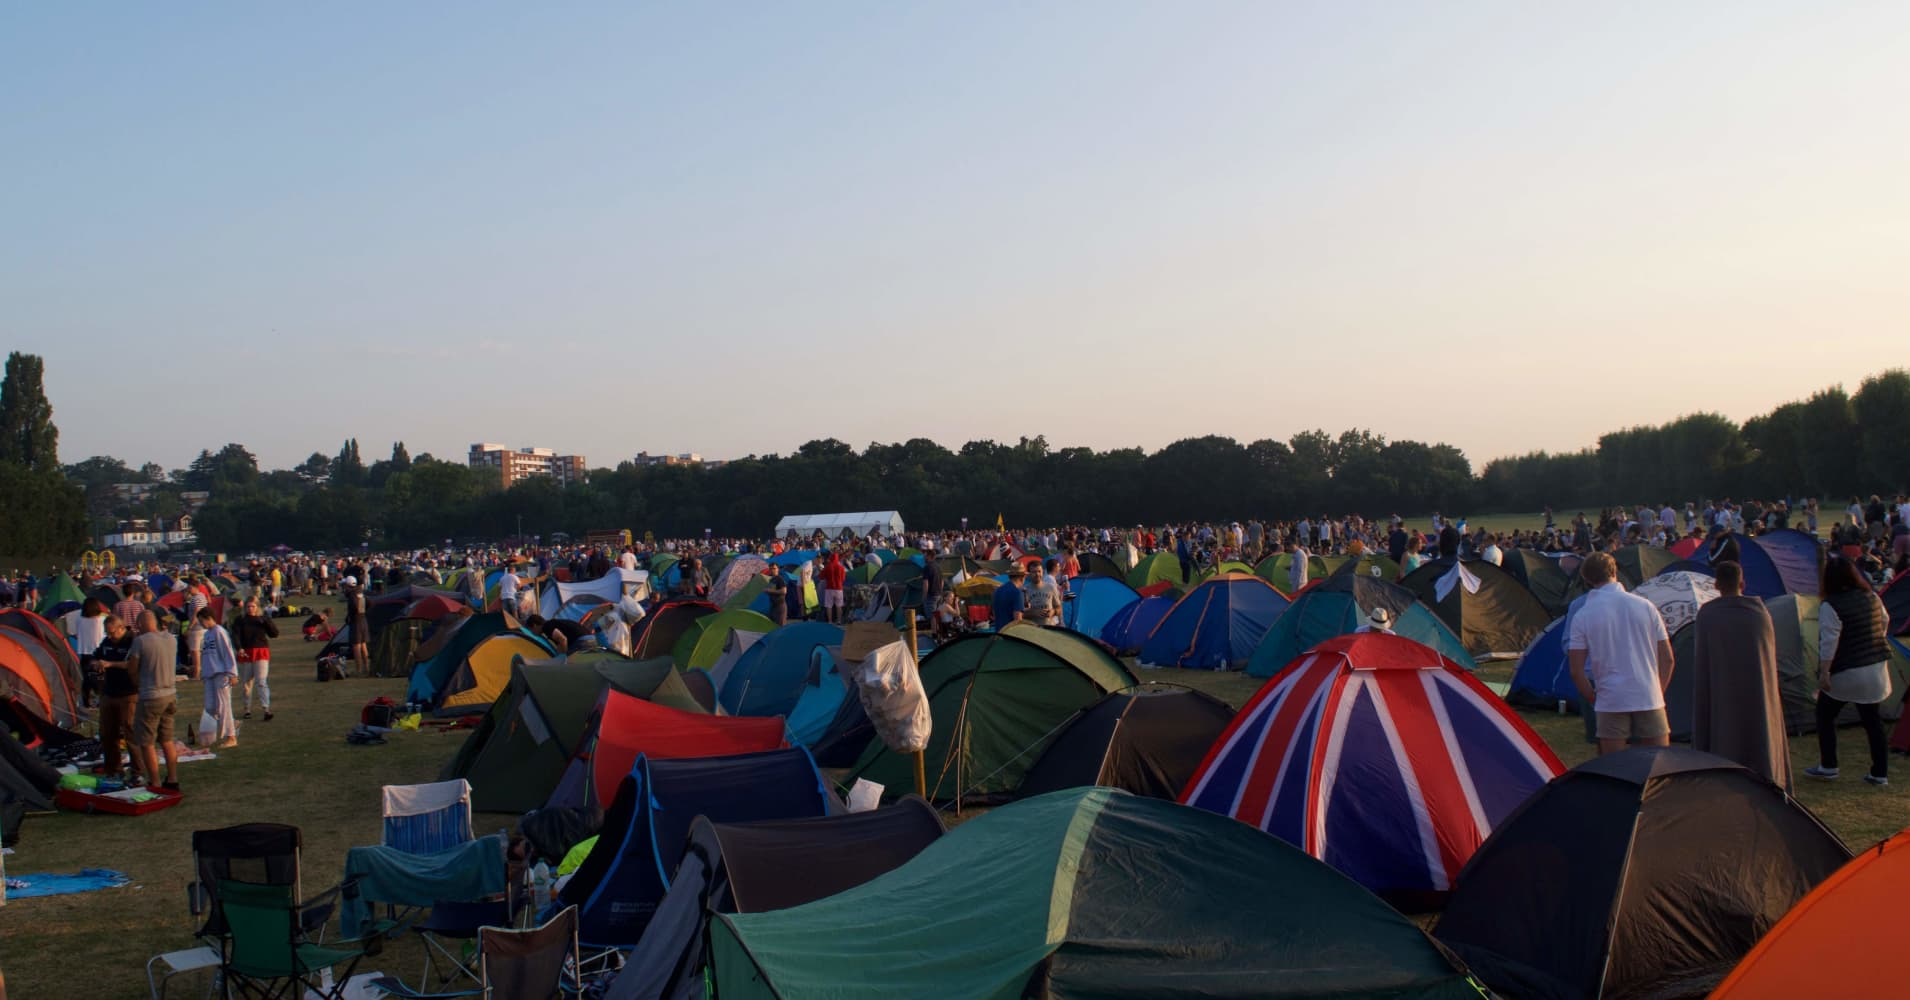 Thousands of people camp out to score premium Wimbledon tickets every year